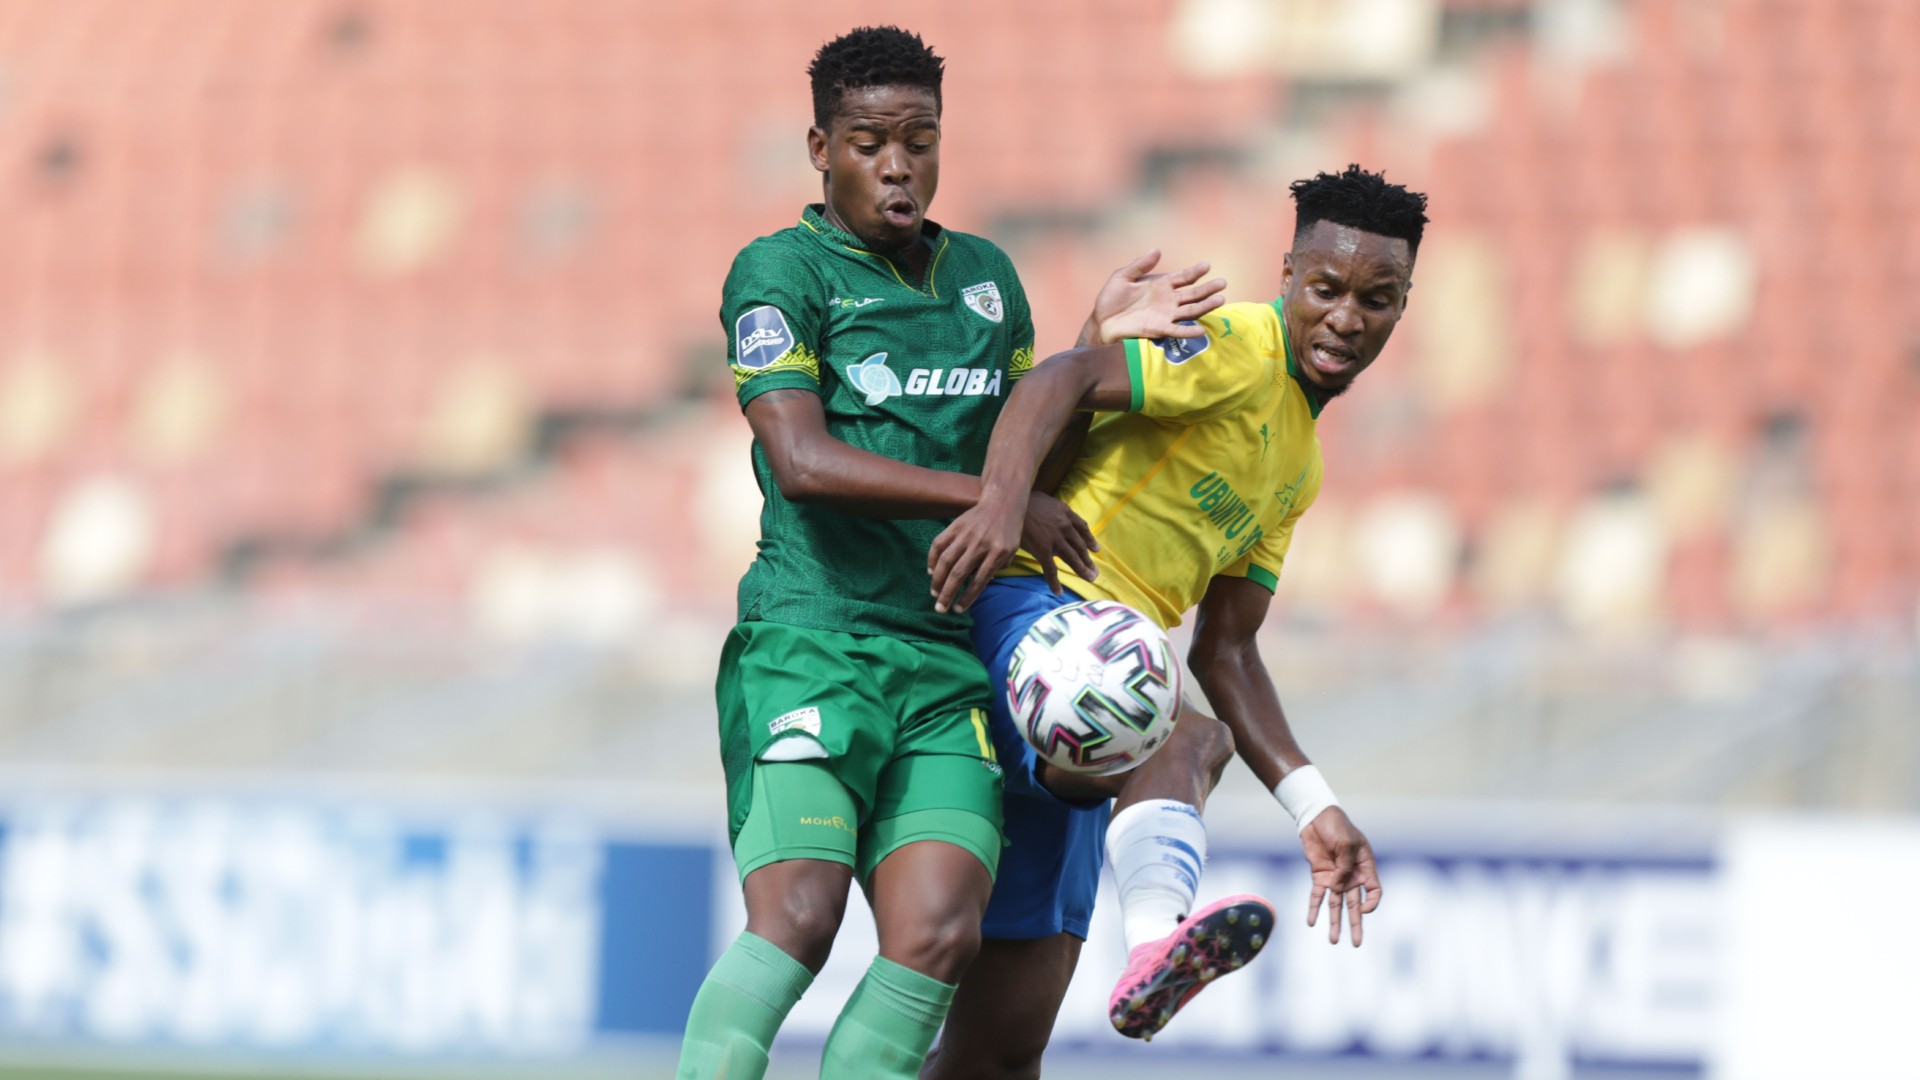 Baroka FC 0-2 Mamelodi Sundowns: Dominant Masandawana go three points clear ahead of Tshwane Derby